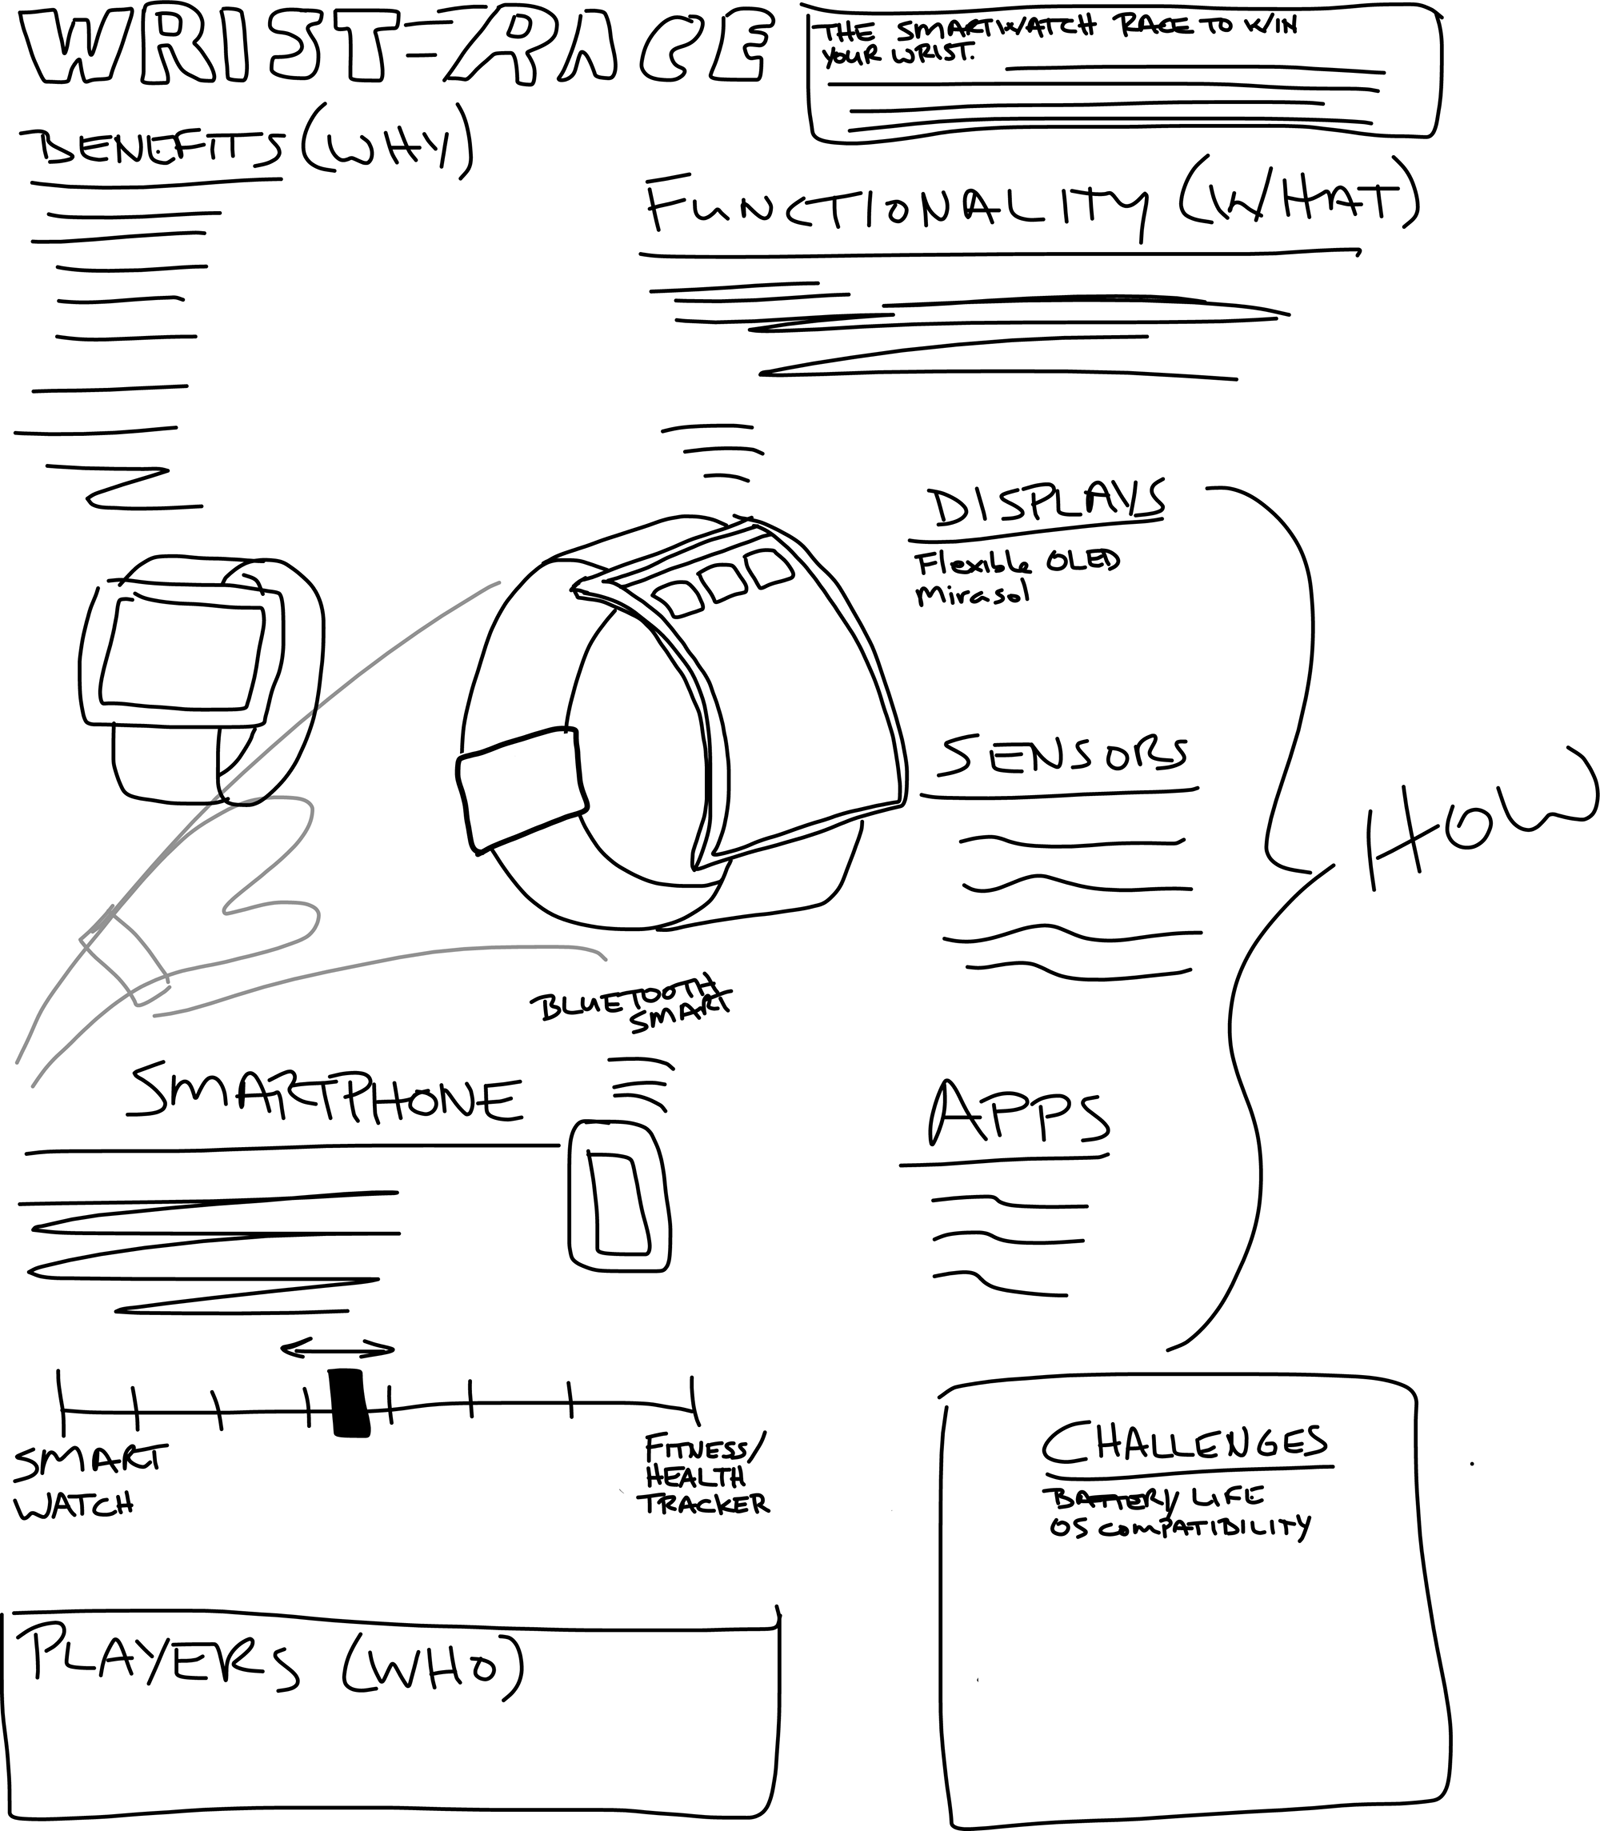 Wrist Race Project: Explaining Smartwatches with an Infographic